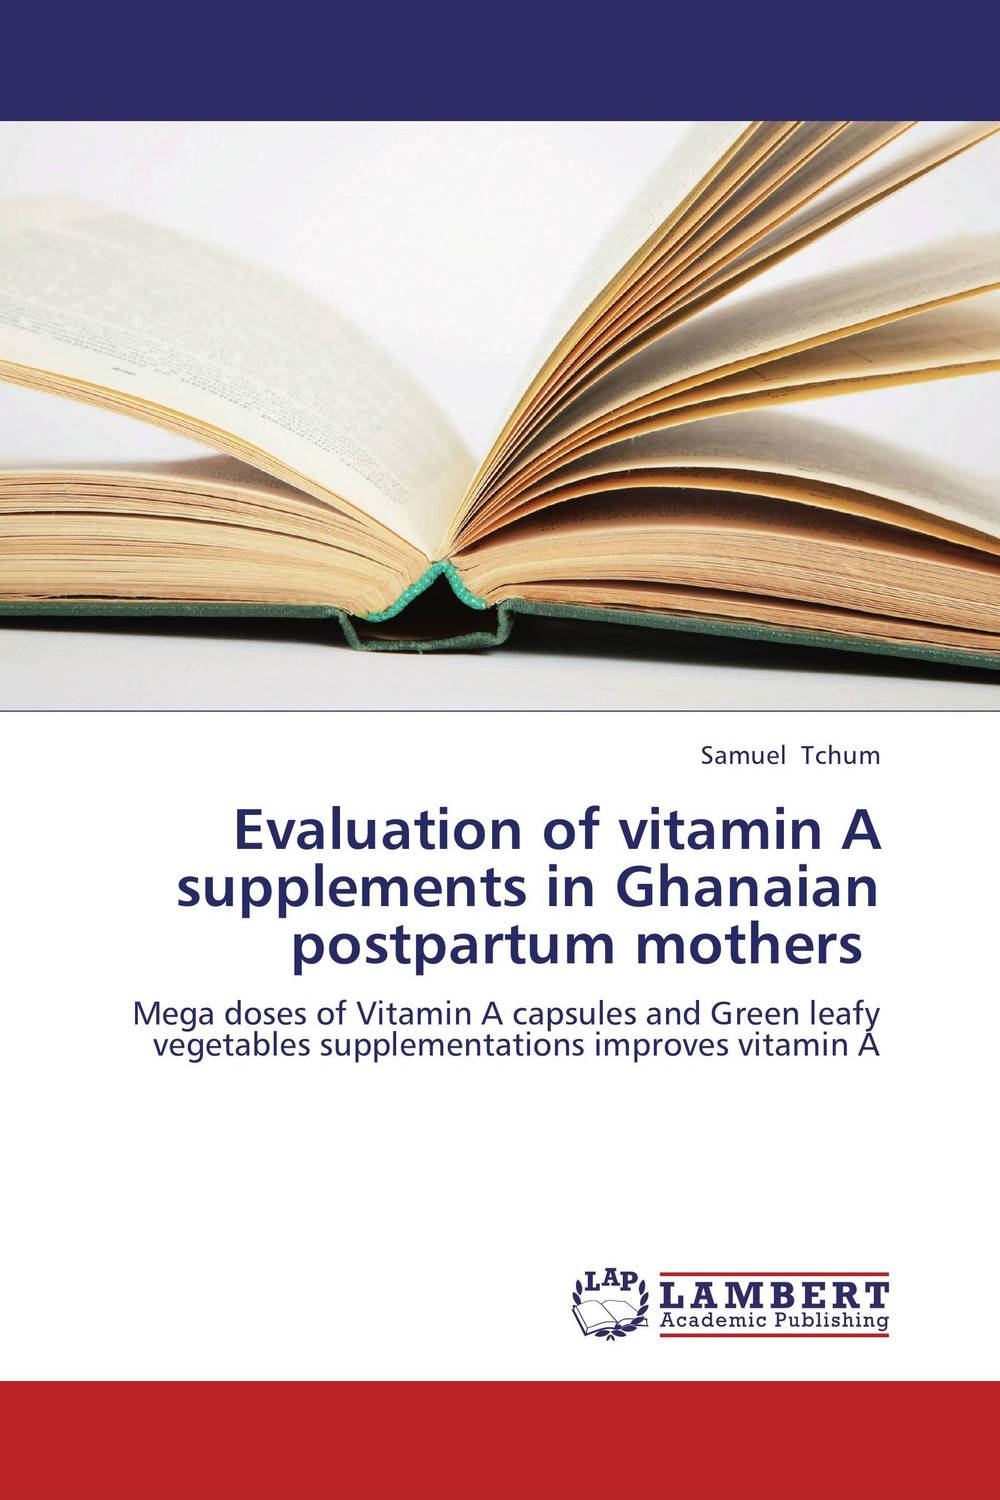 Evaluation of vitamin A supplements in Ghanaian postpartum mothers evaluation of vitamin a supplements in ghanaian postpartum mothers